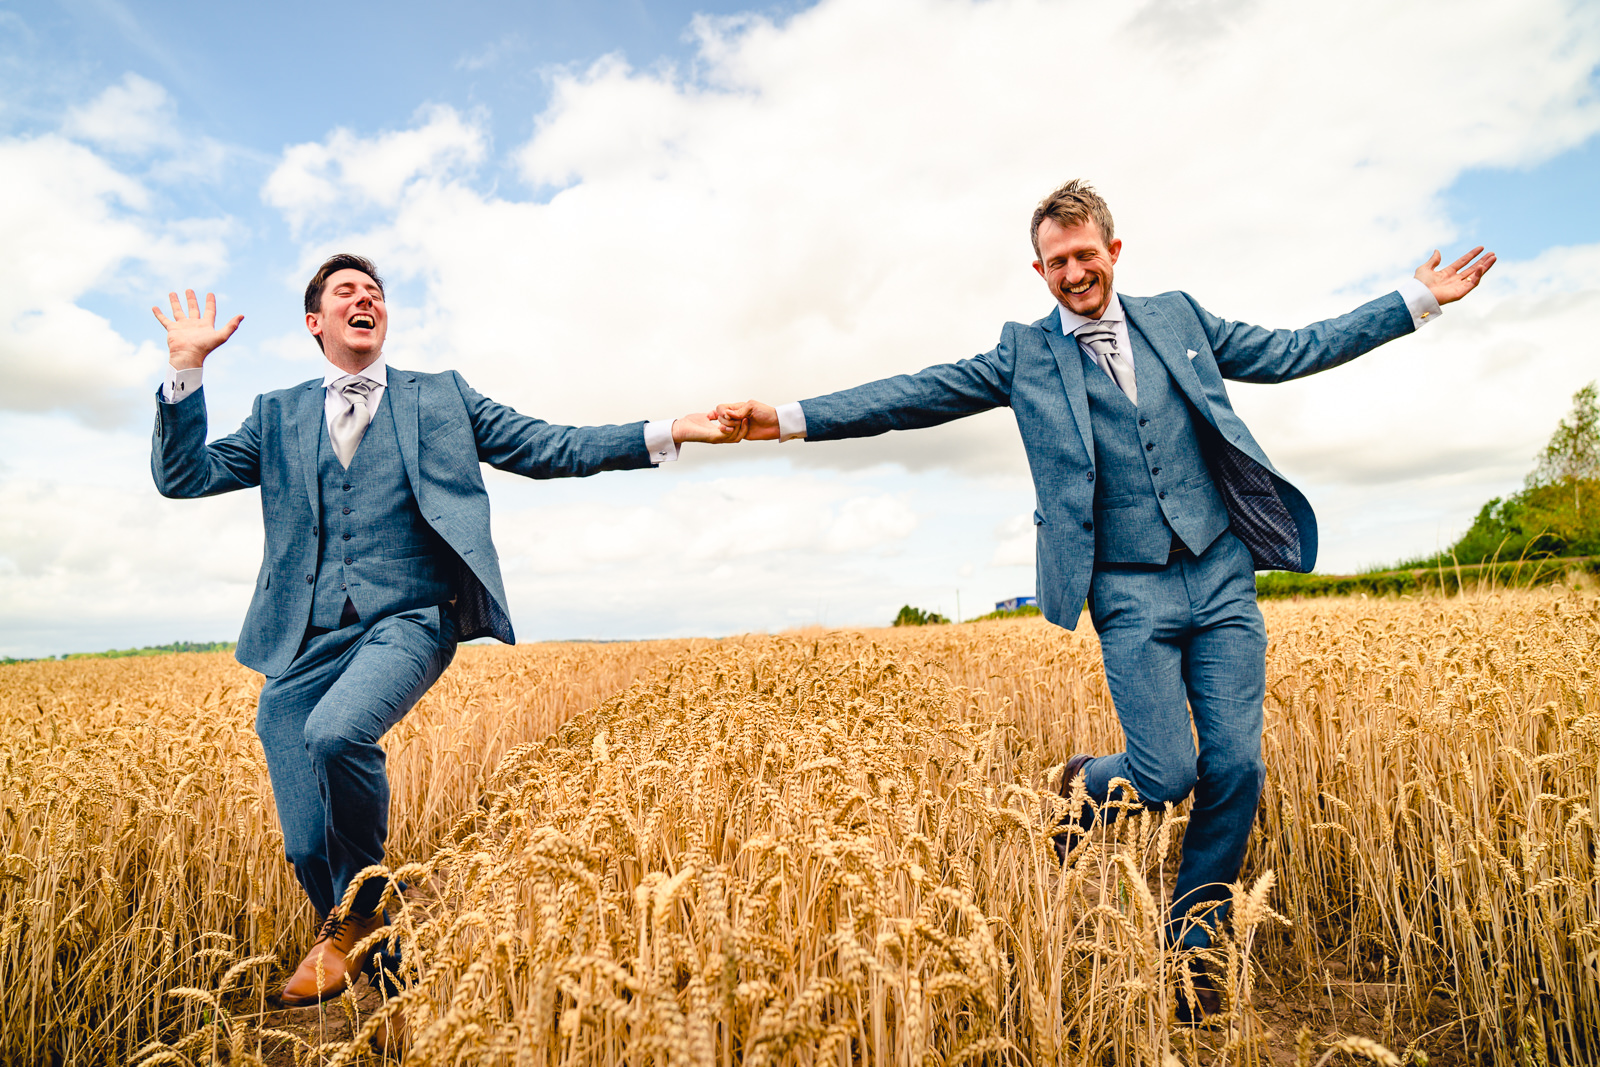 Relaxed wedding, The Dignums Photography, Unconventional Wedding, Alterative Wedding, Chilled out wedding, simple wedding, quirky wedding inspiration, wedding planning, unique wedding- funny wedding photos- funny groomsmen